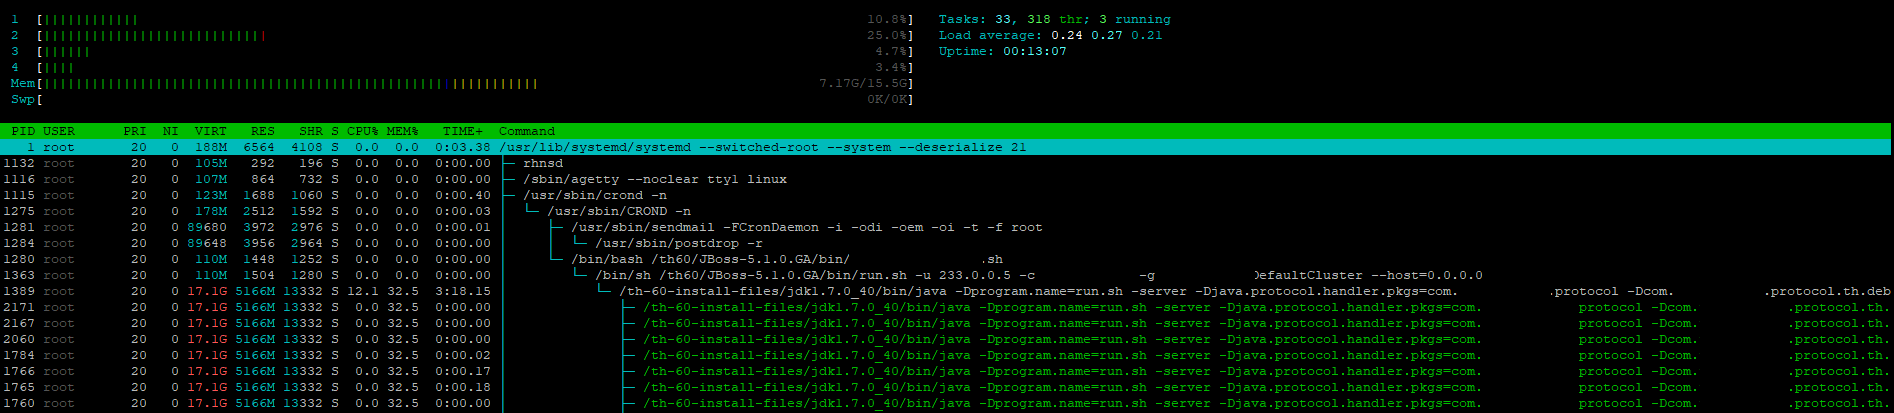 htop process view when pressing F5